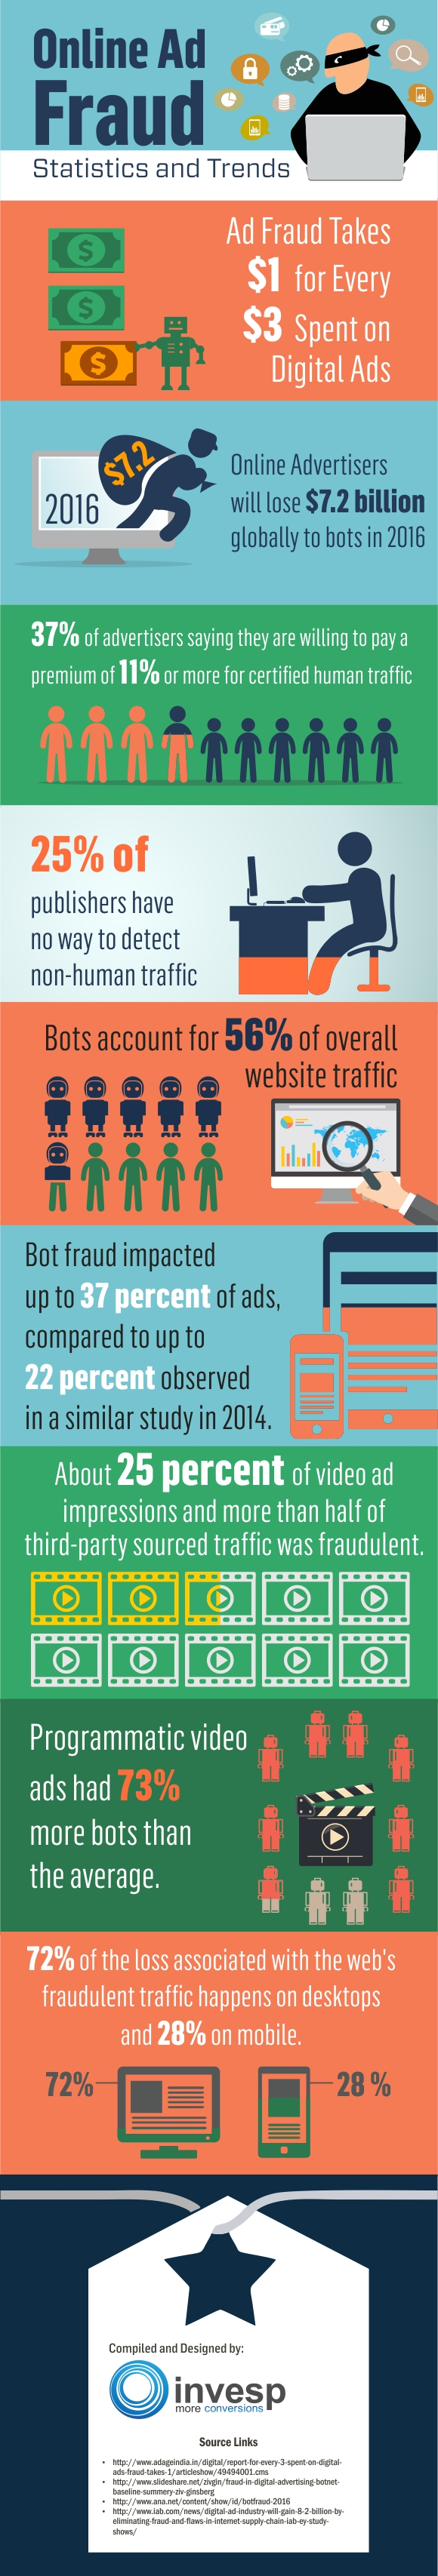 Ad Fraud Statistics and Trends